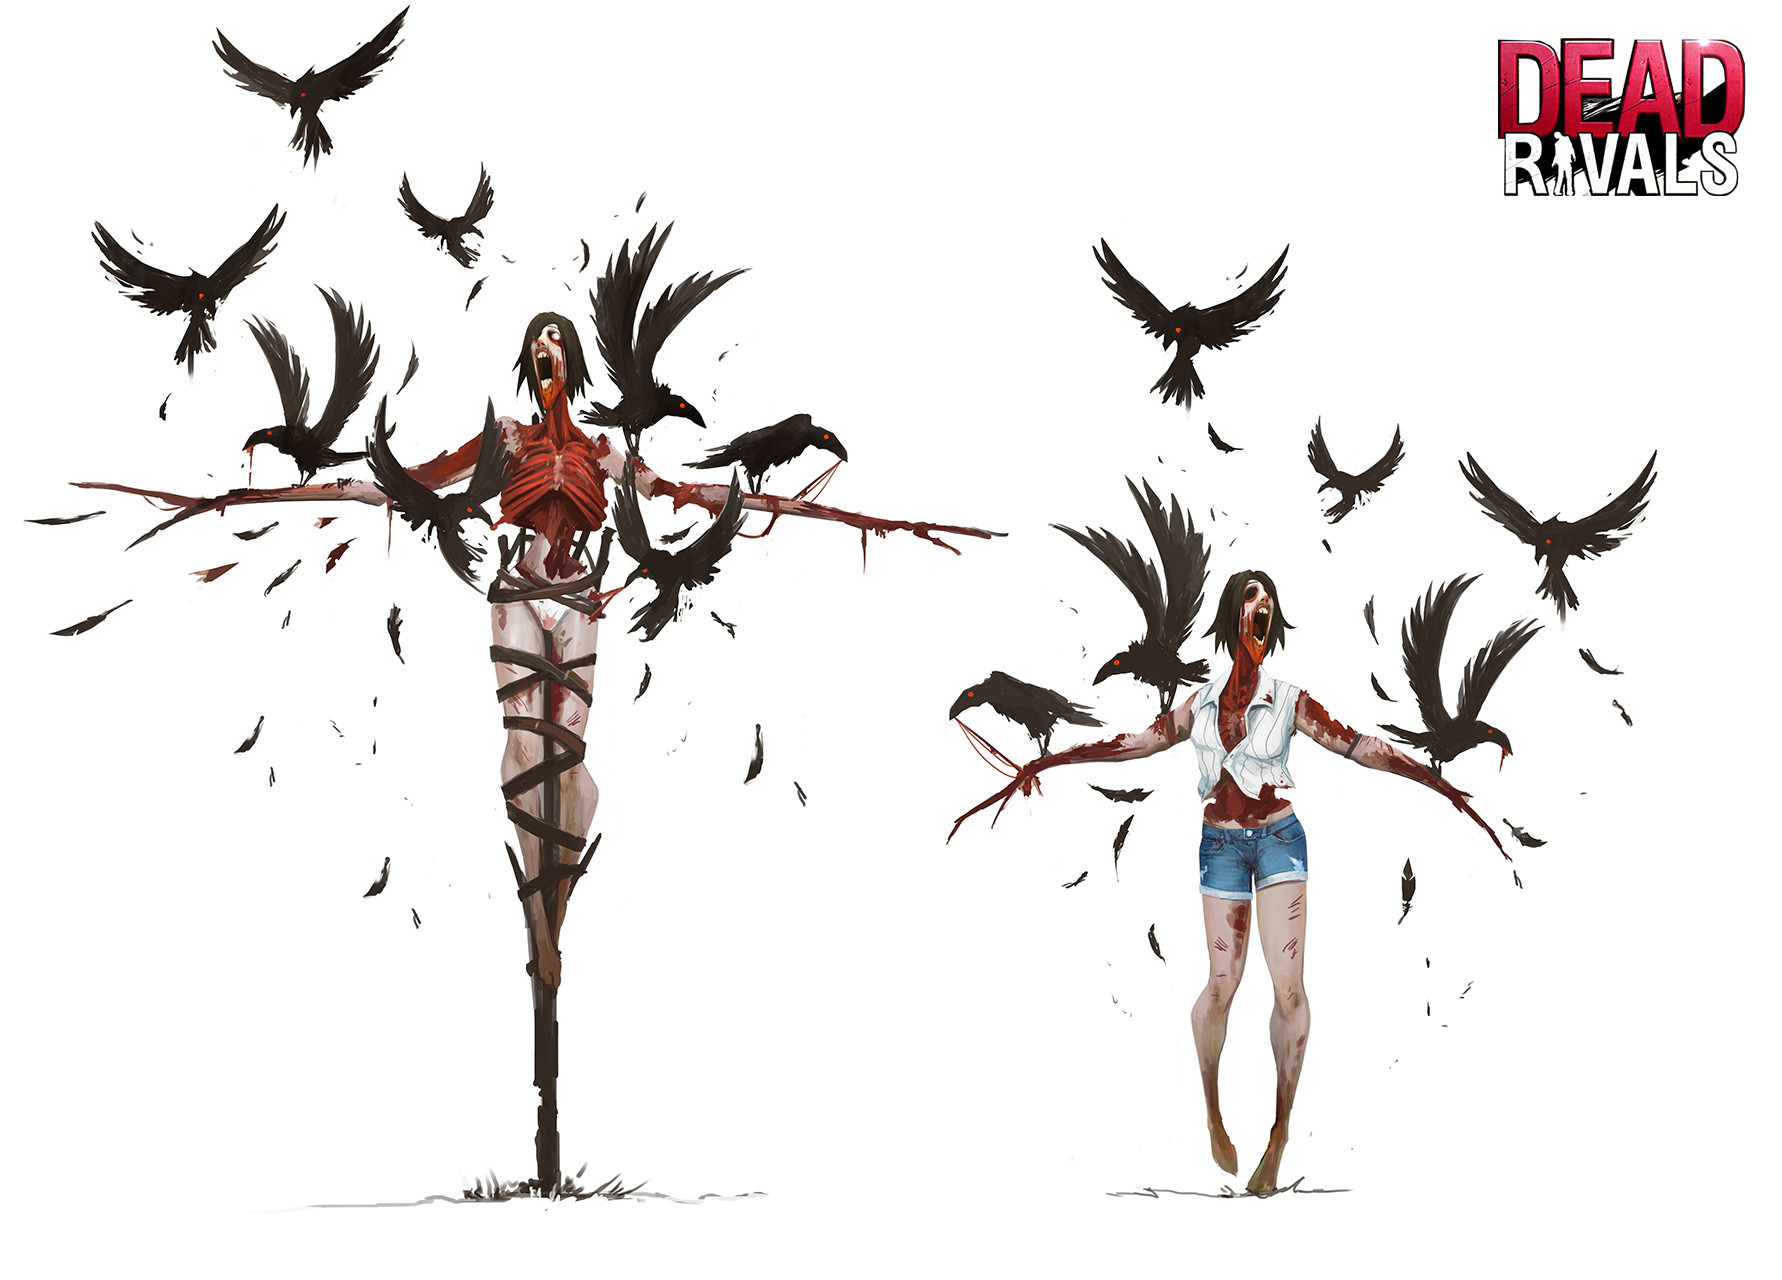 Alexandre chaudret dw characters zombies scarecrow01